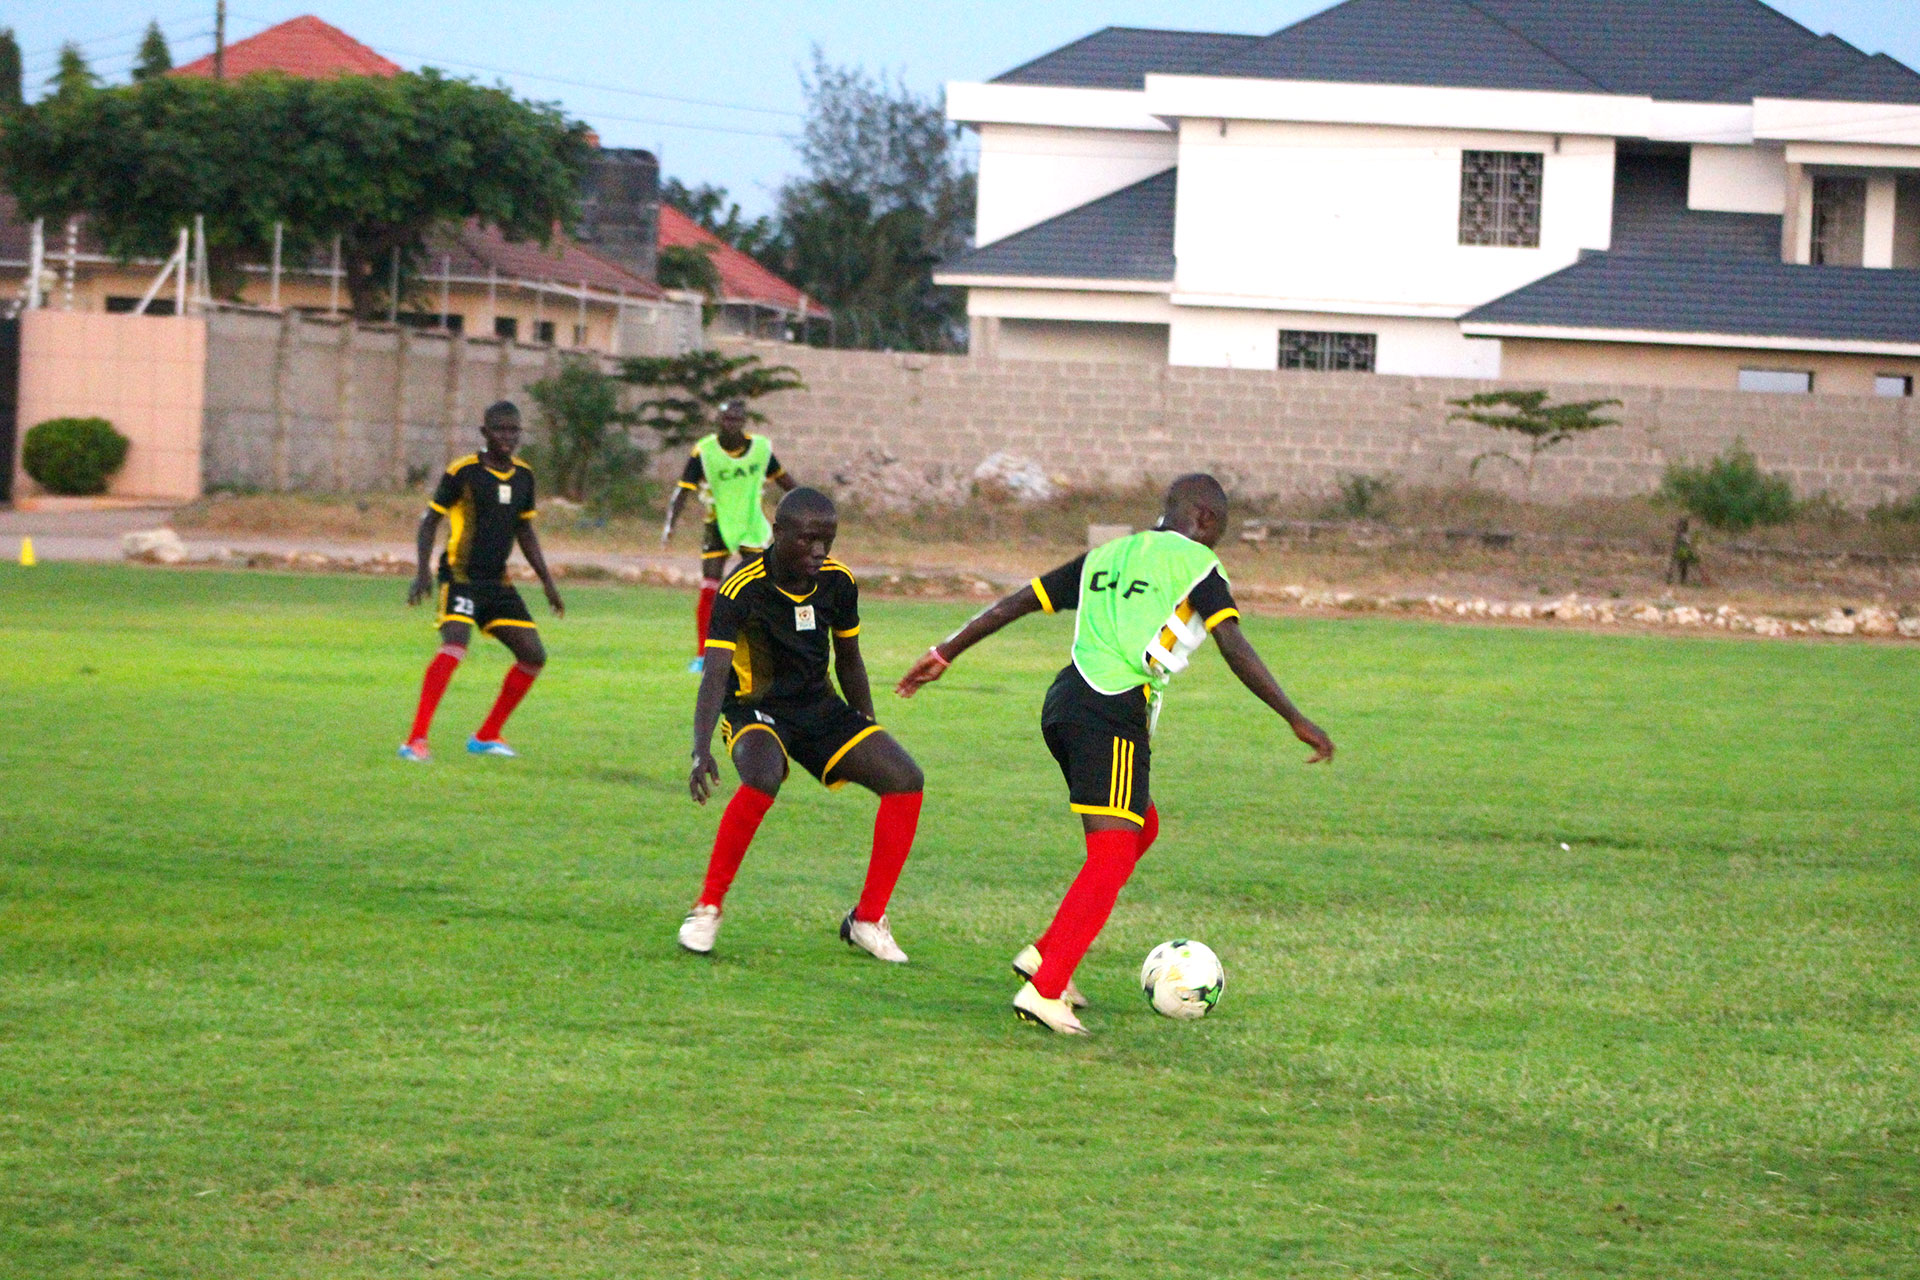 The Cubs in training after arriving in Tanzania (photo by FUFA Media)